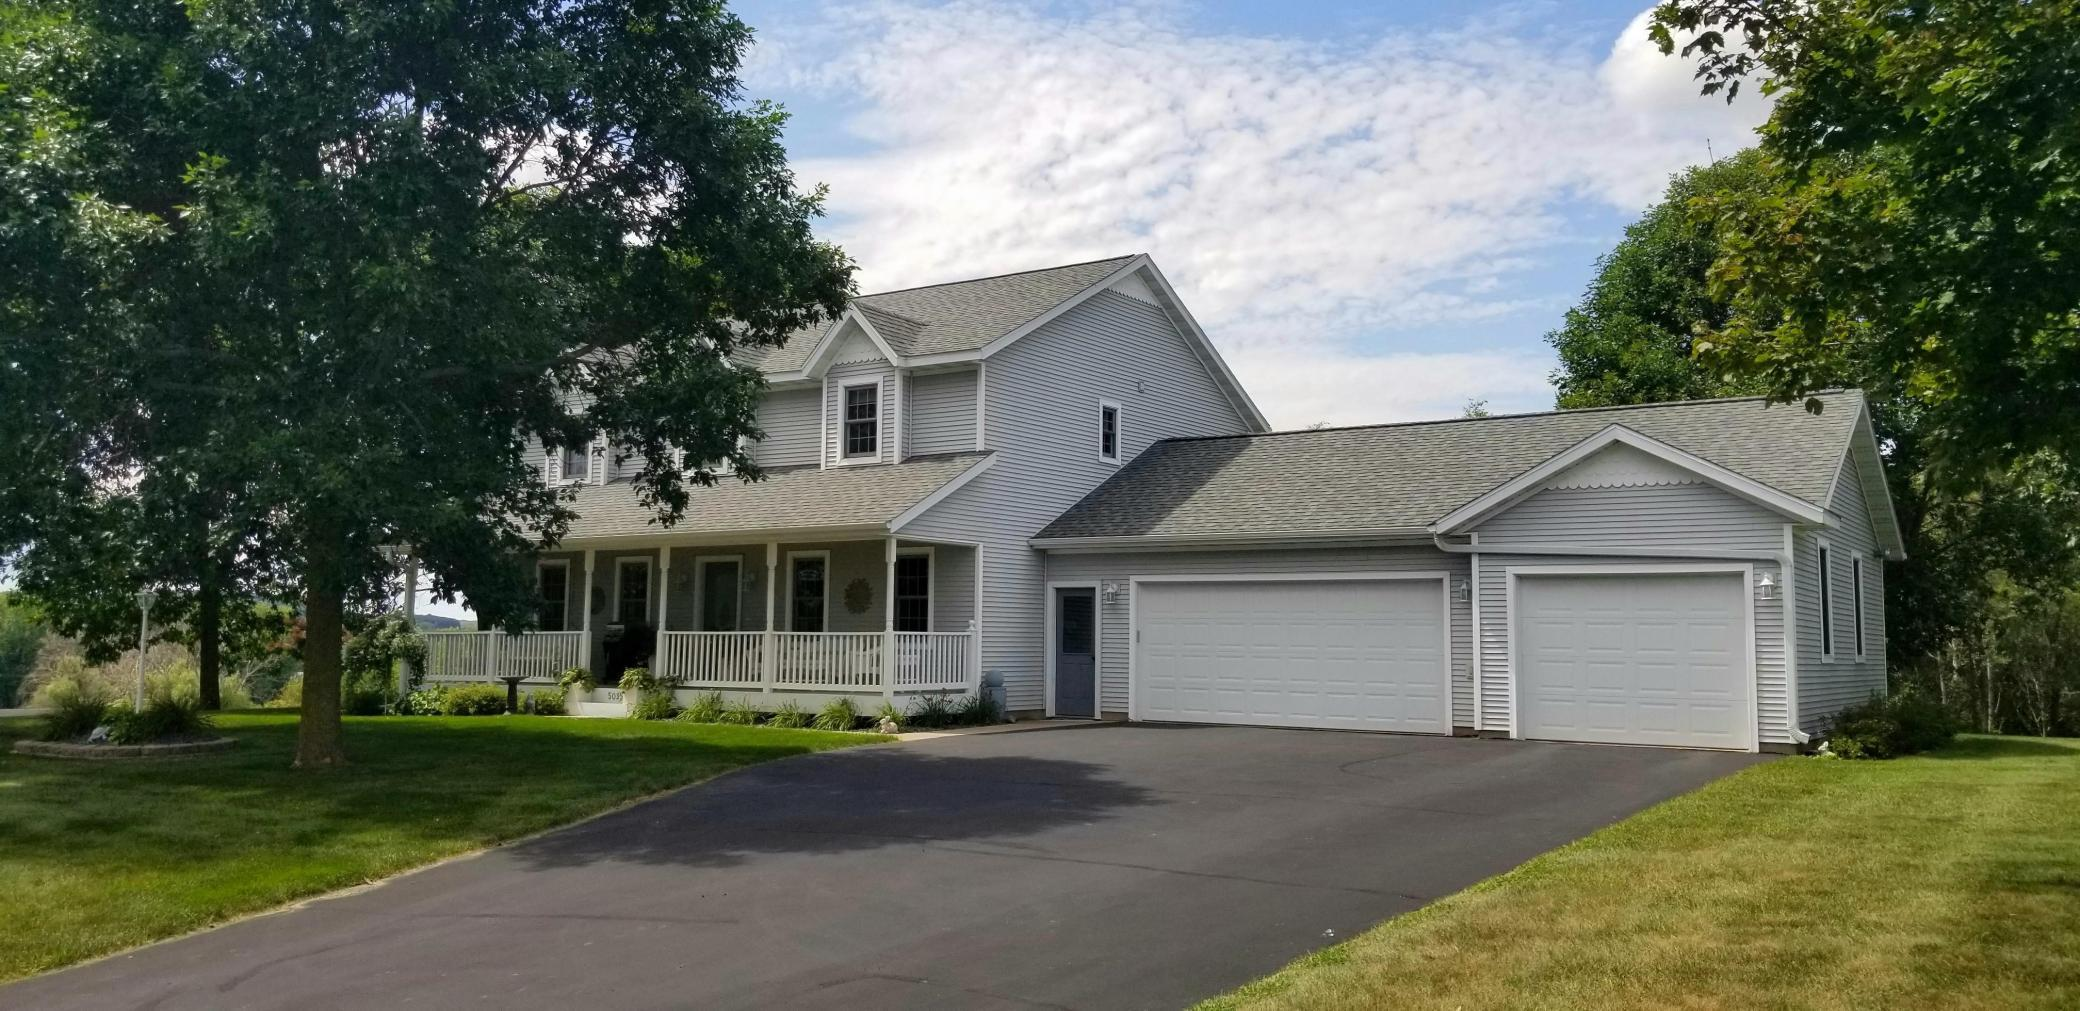 50953 Hilltop Lane Property Photo - Eleva, WI real estate listing